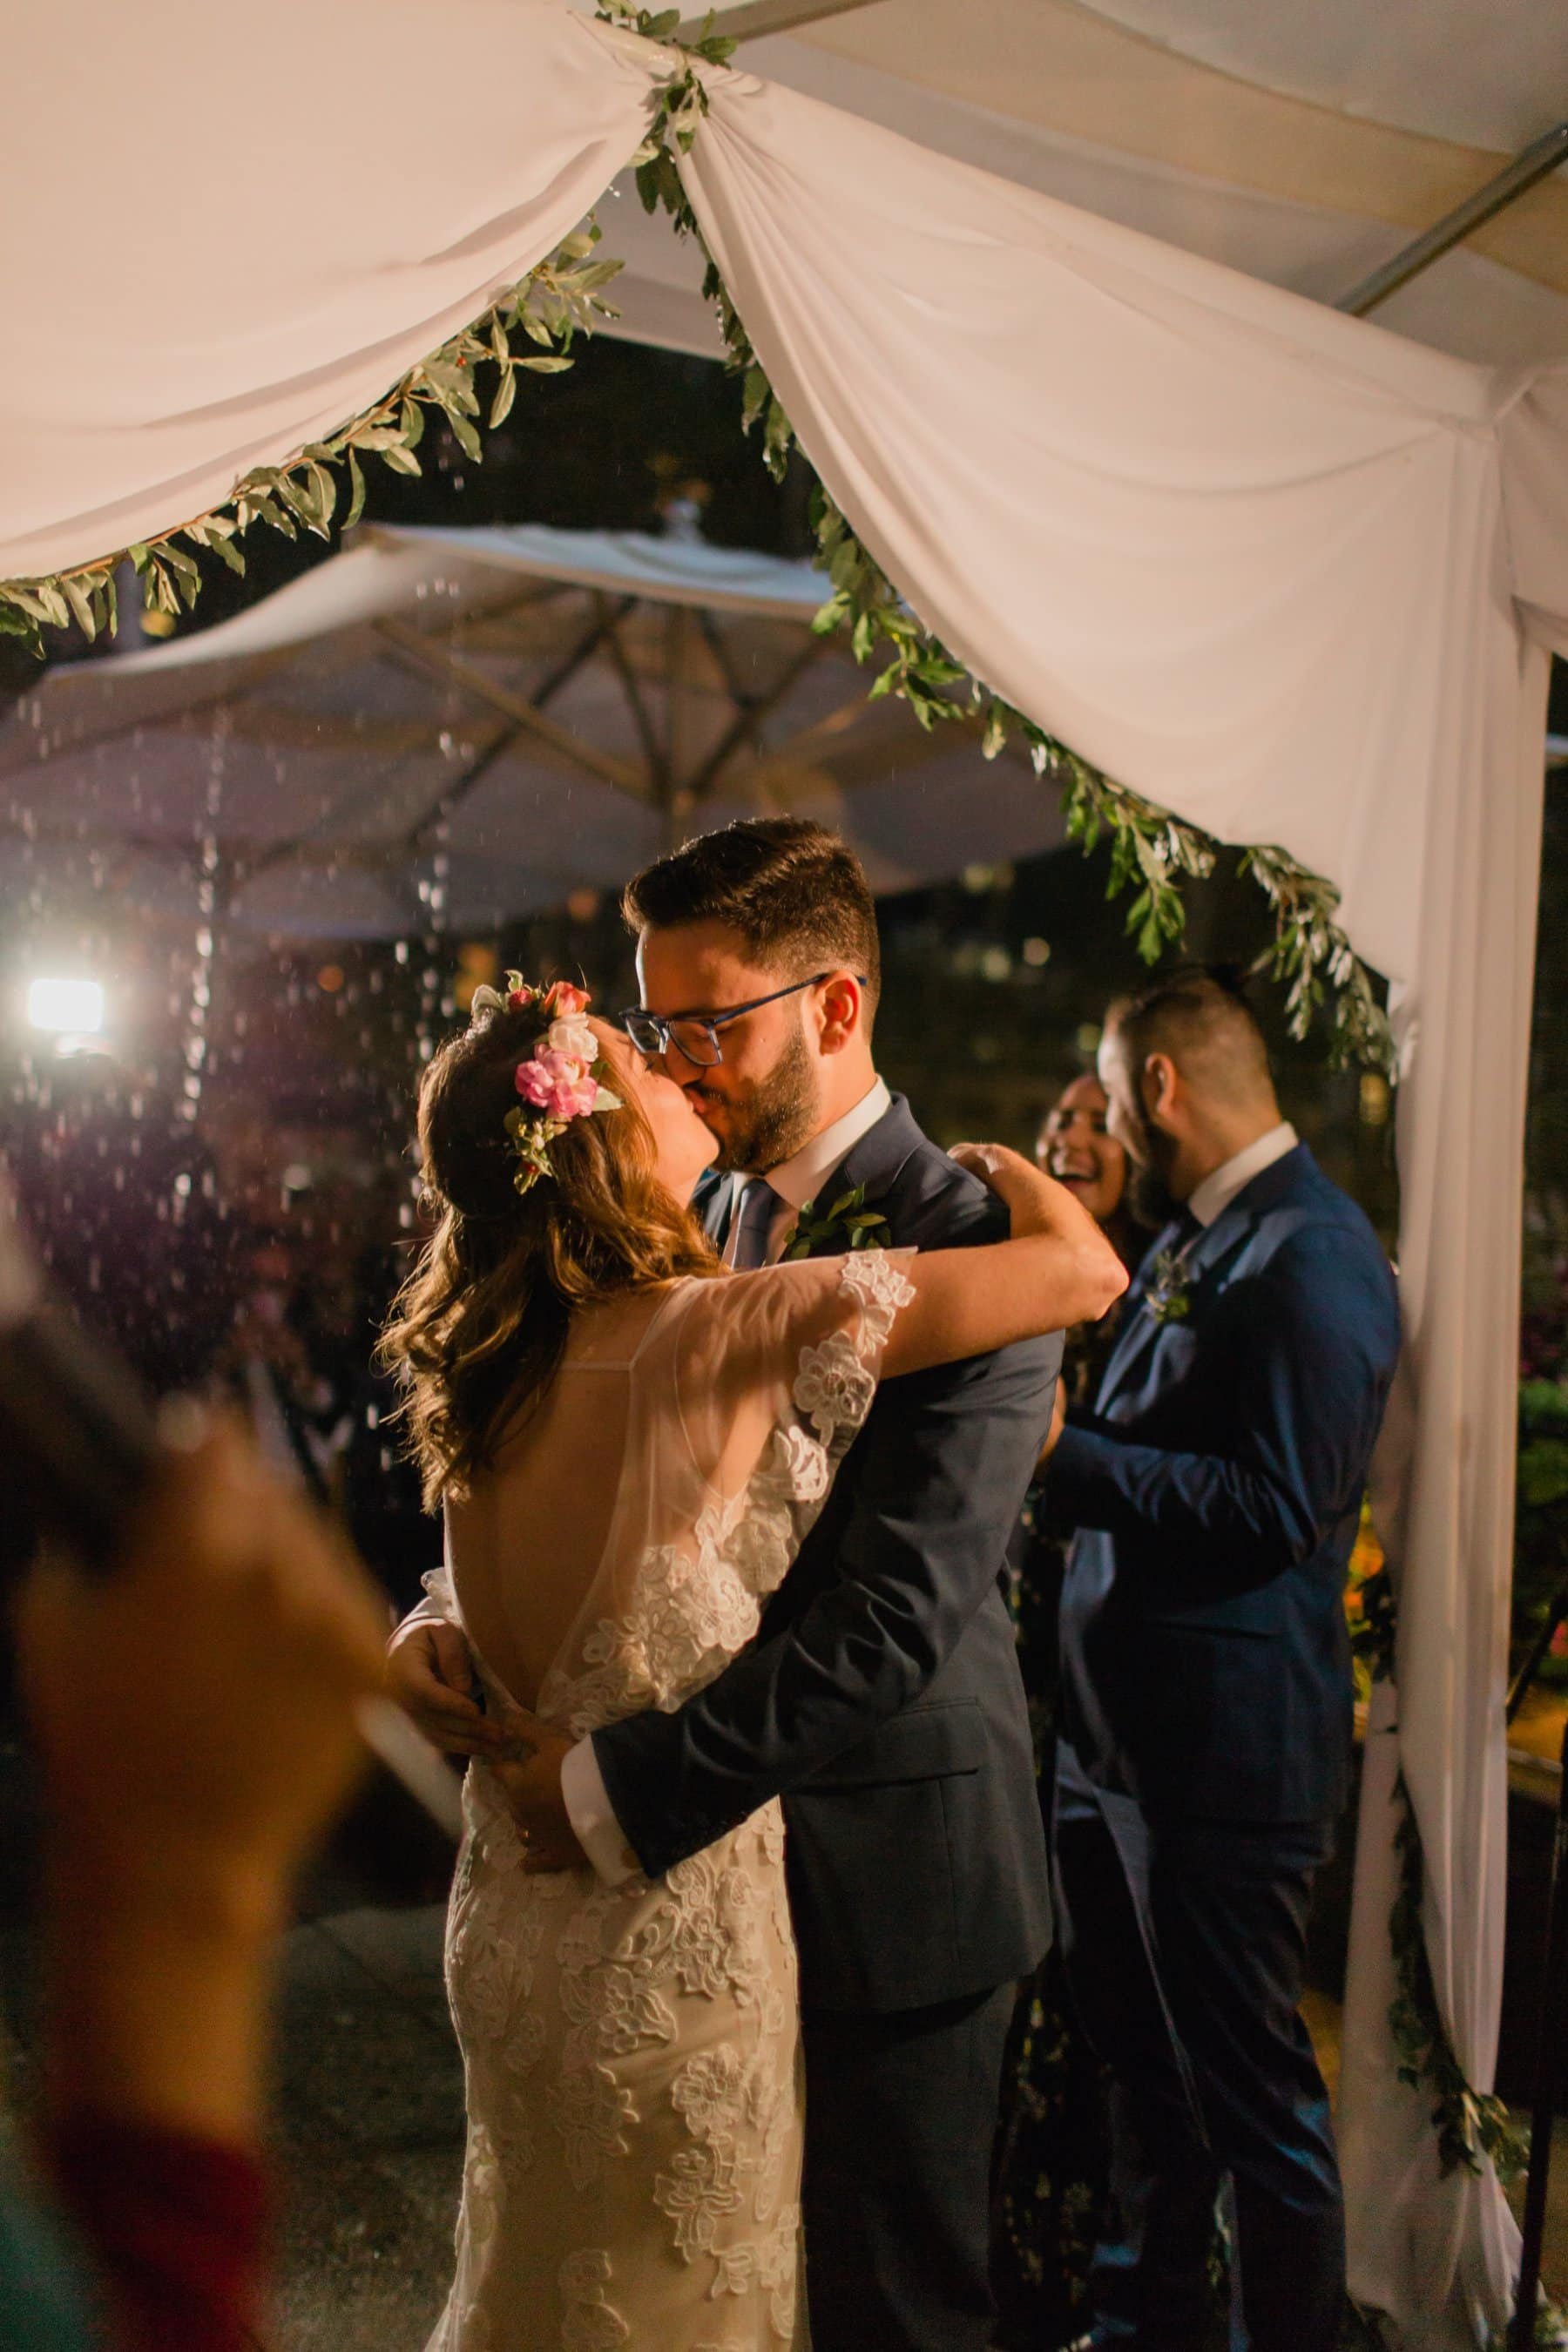 First kiss bride & groom Bryant Park Grill rooftop wedding ceremony in the rain at night